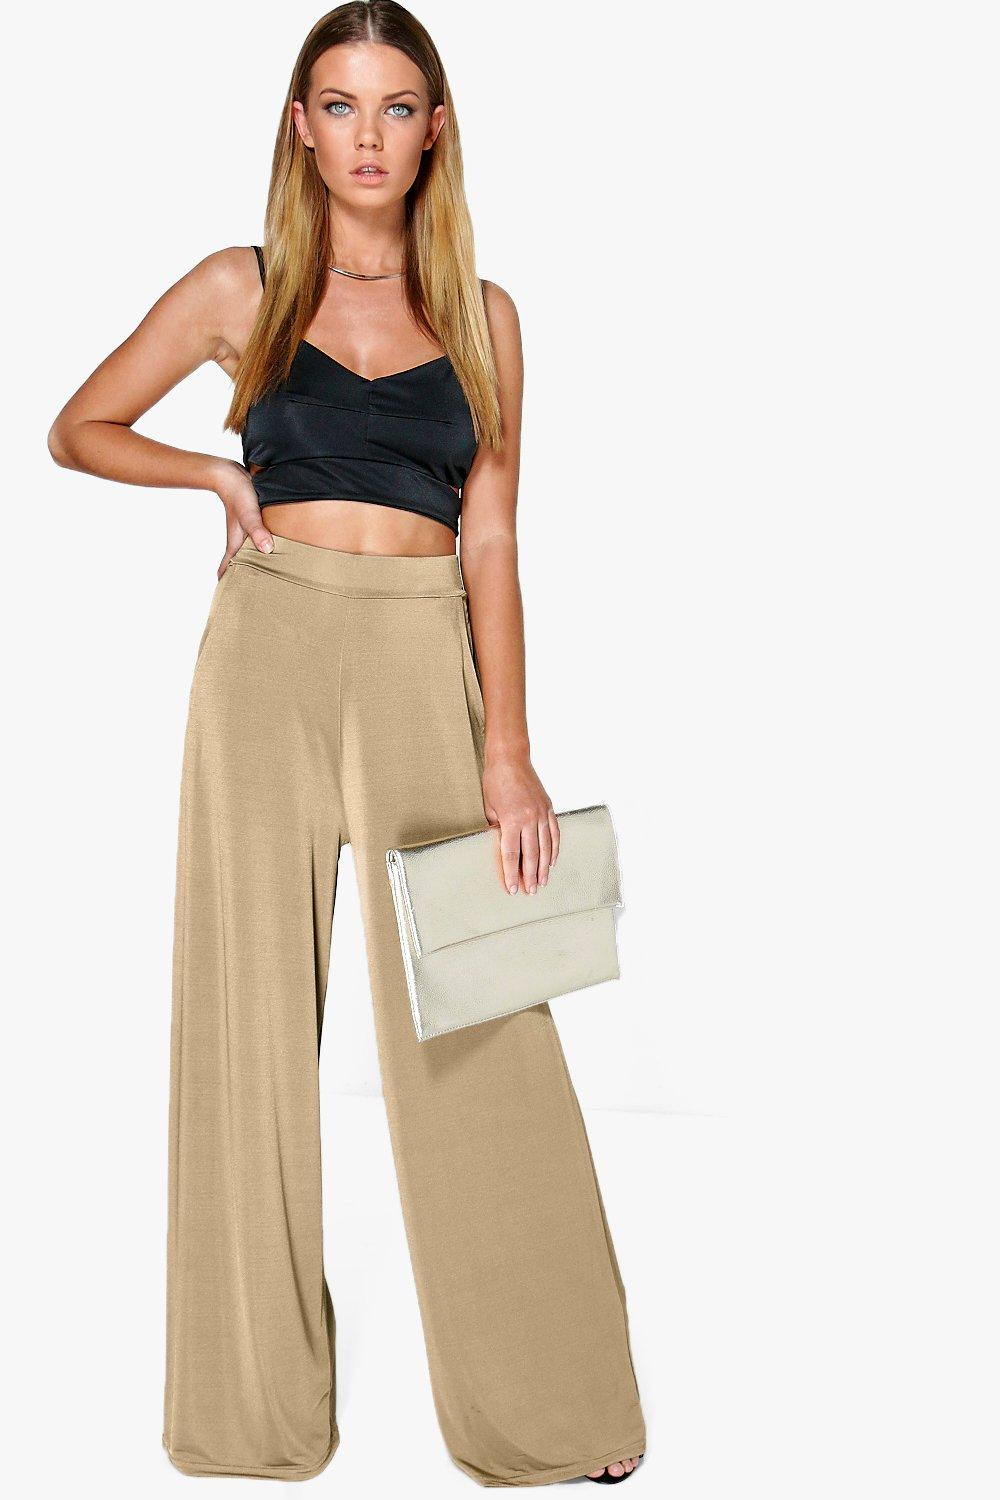 1930s Women's Pants and Beach Pajamas Matilda Pocket Side Wide Leg Trousers sand $17.00 AT vintagedancer.com